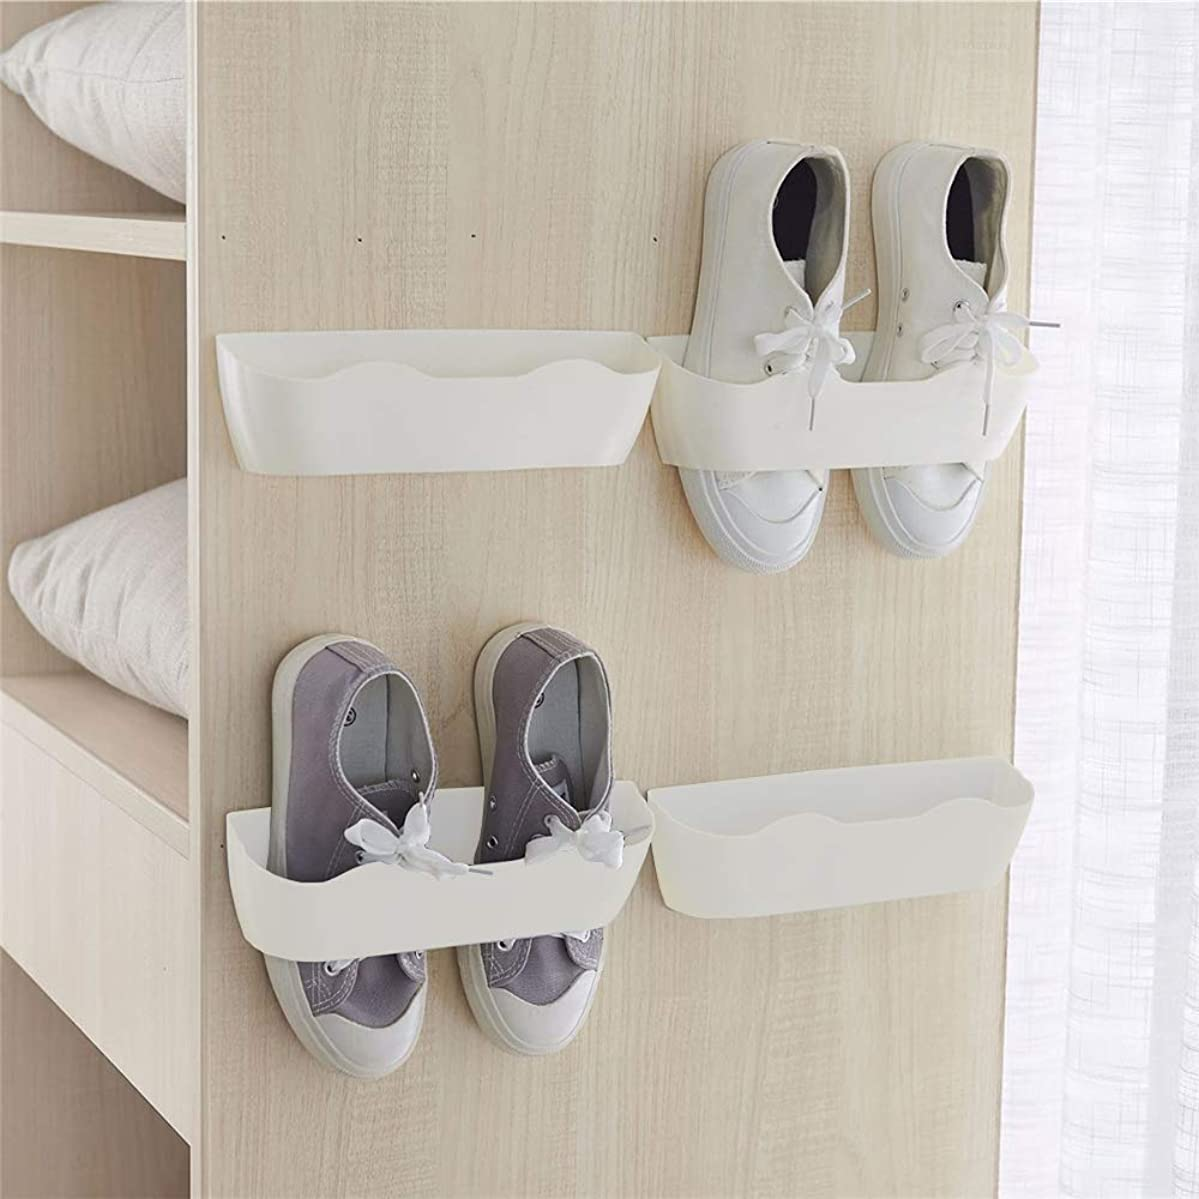 Yocice Wall Mounted Shoes Rack 4pcs with 12pcs Sticky Hanging Strips, Plastic Shoes Holder Storage Organizer,Door Shoe Hangers -White,SM02 atqazrfjrdr5